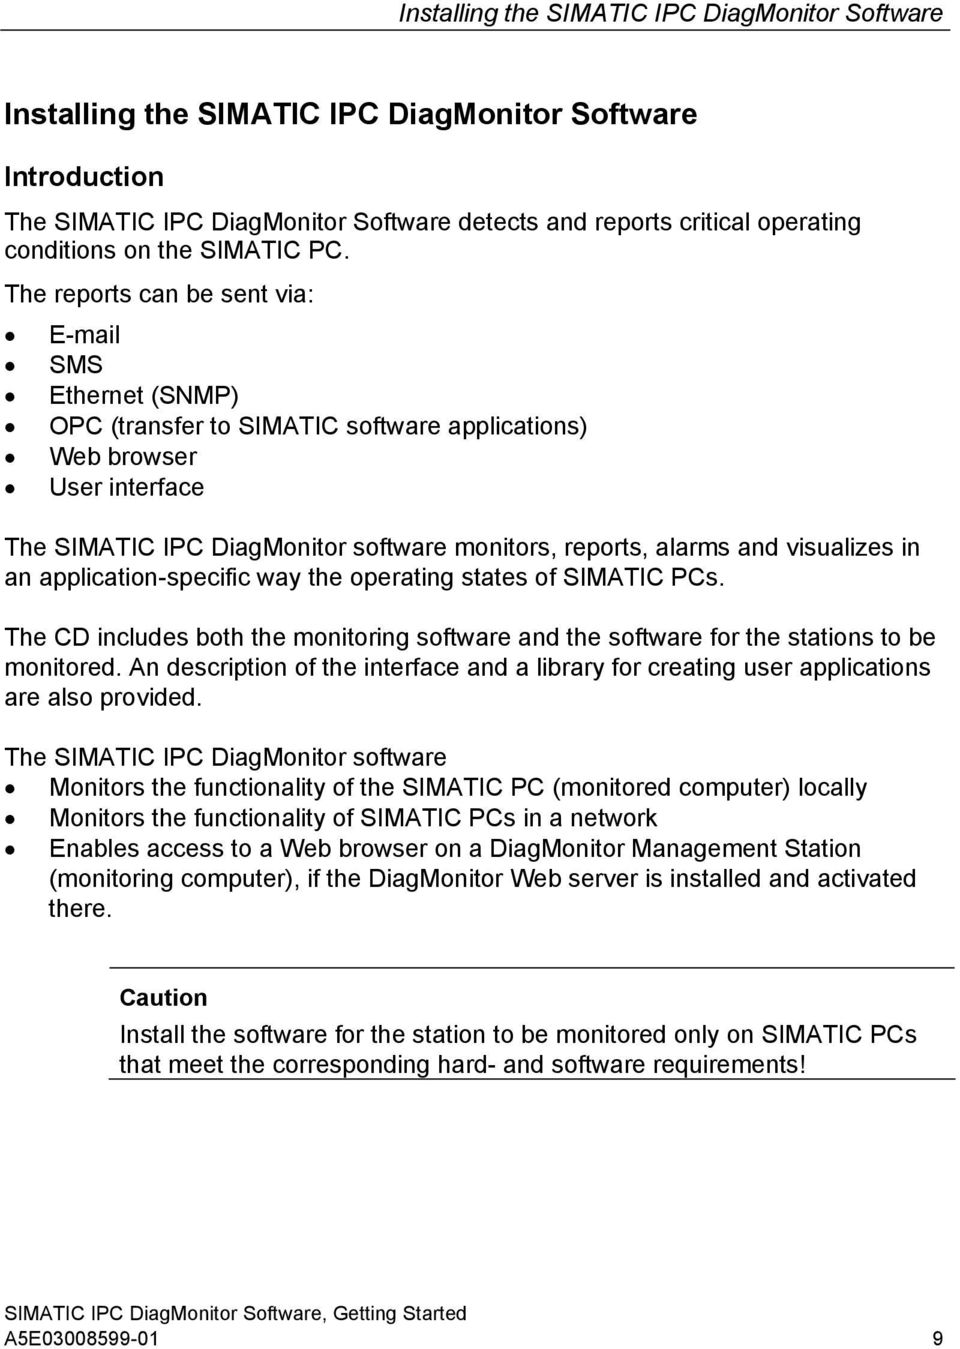 The reports can be sent via: E-mail SMS Ethernet (SNMP) OPC (transfer to SIMATIC software applications) Web browser User interface The SIMATIC IPC DiagMonitor software monitors, reports, alarms and